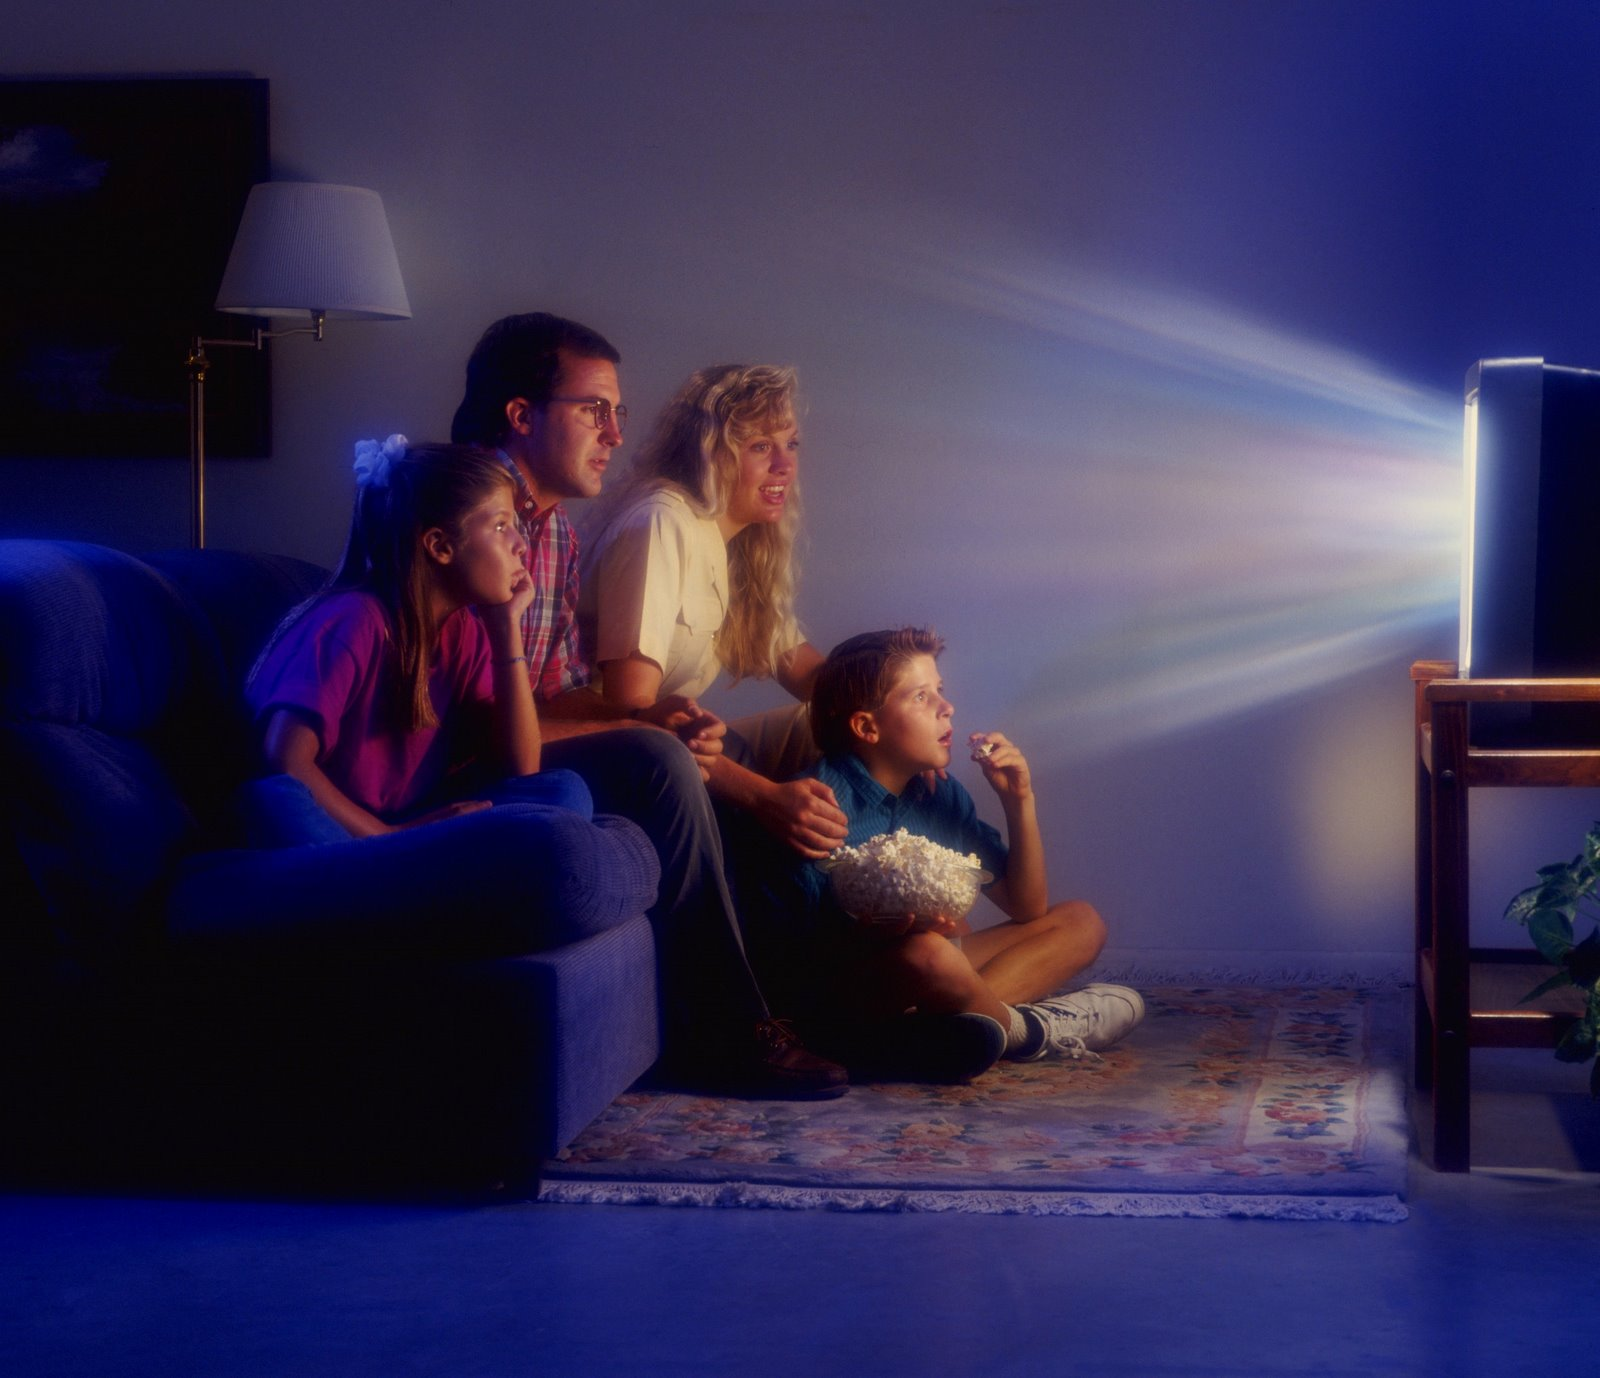 Watching tv makes you smarter